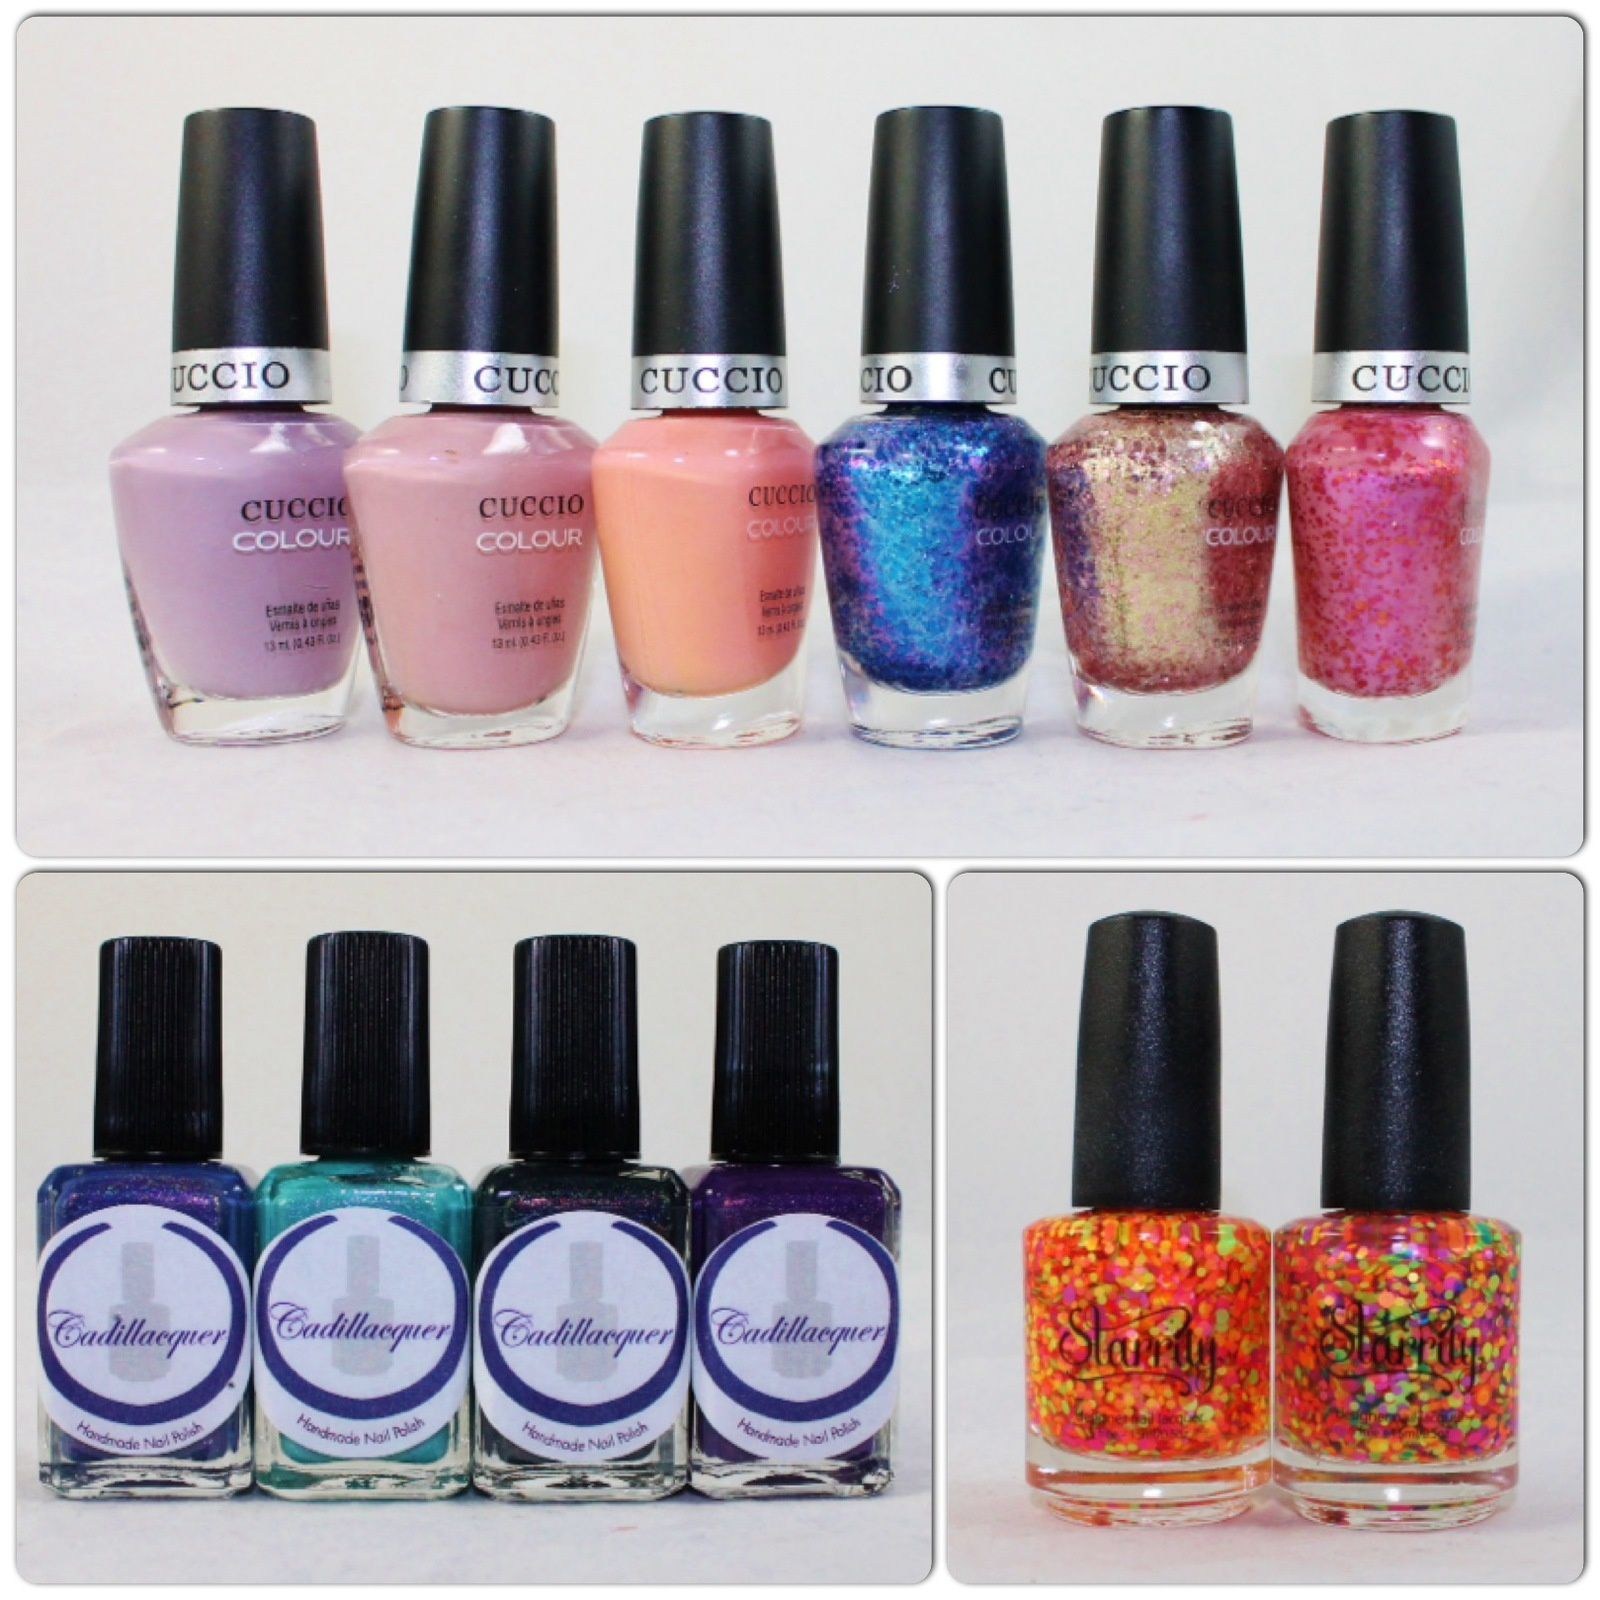 Cuccio Longing for London, Bologna Blush, Life's a Peach, Illumination, Chemical Attraction, Opposites Attract. Cadillacquer Welcome to Charming, The Rest is Silence, Day is Gone, Cap'n Cook. Starrily Gumballs, Unicorn Horn.